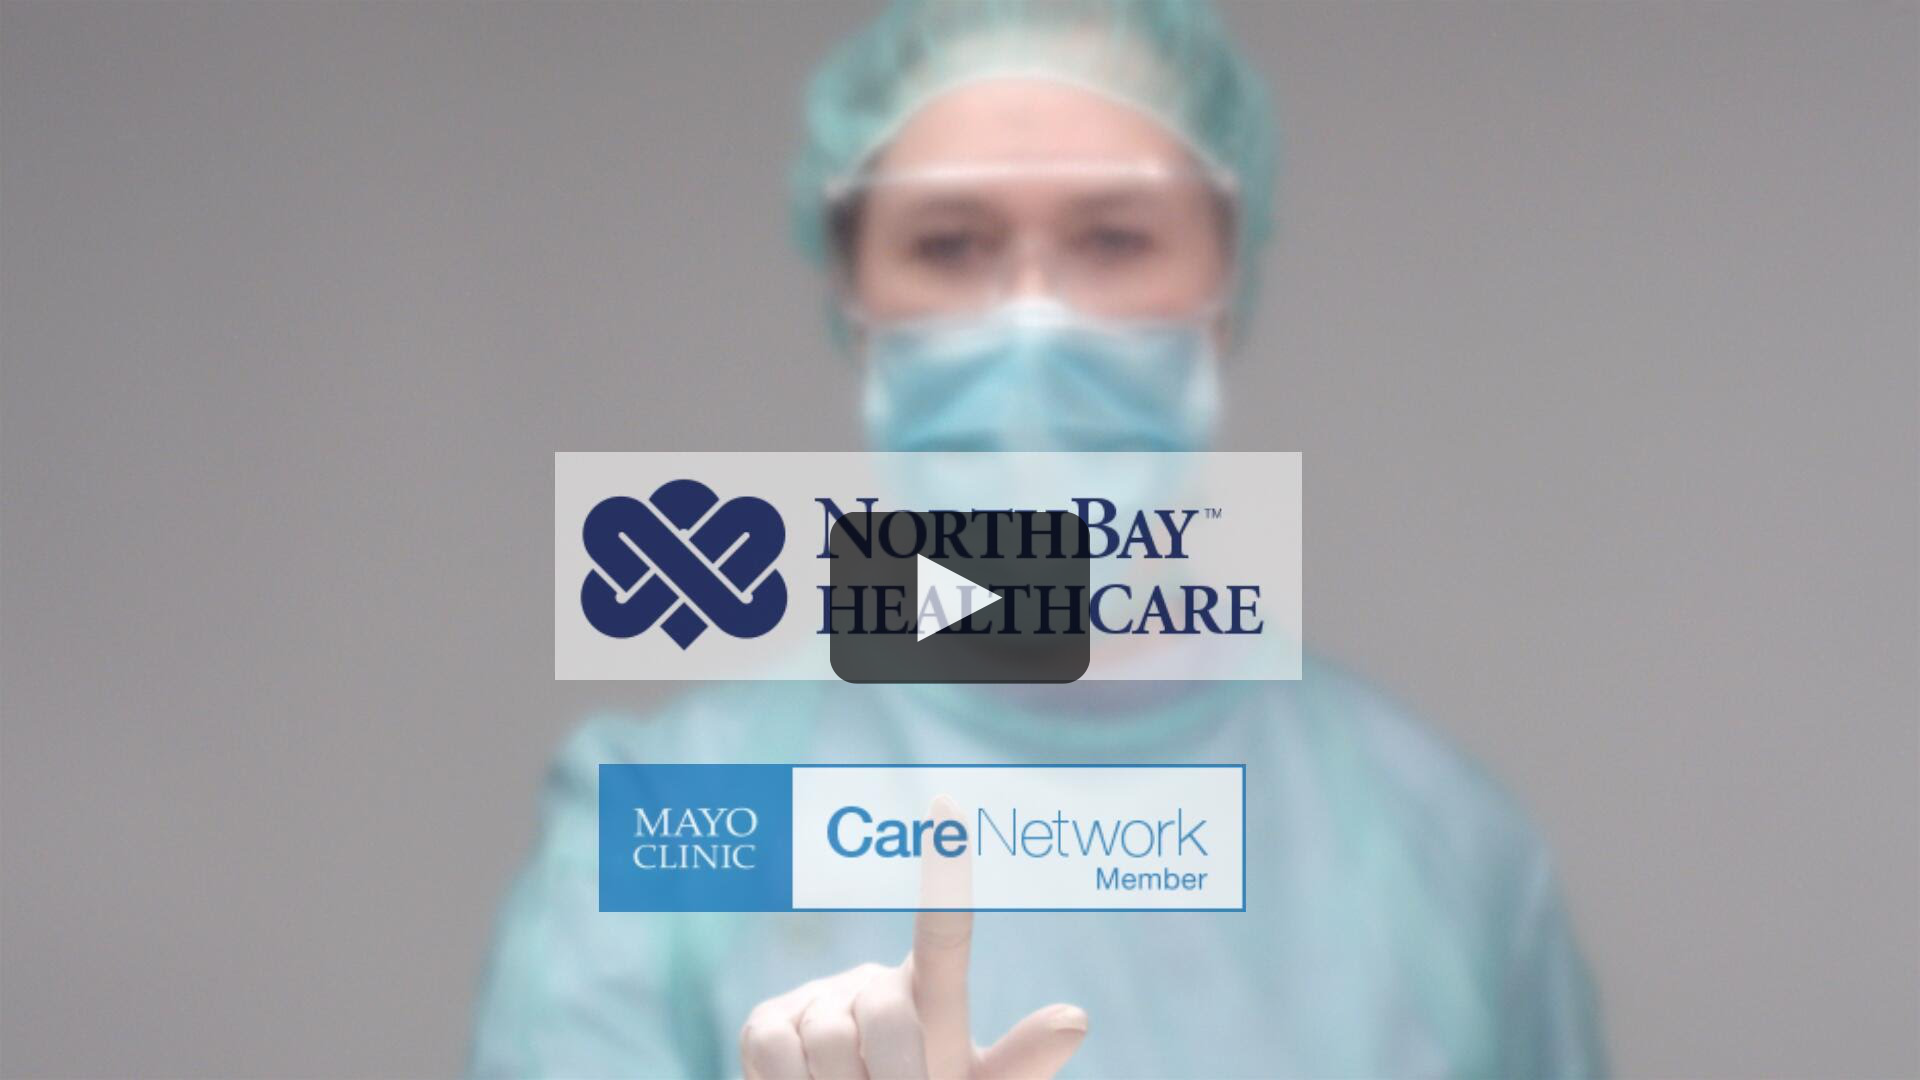 This video goes over NorthBay Healthcare's membership in the Mayo Clinic Care Network.